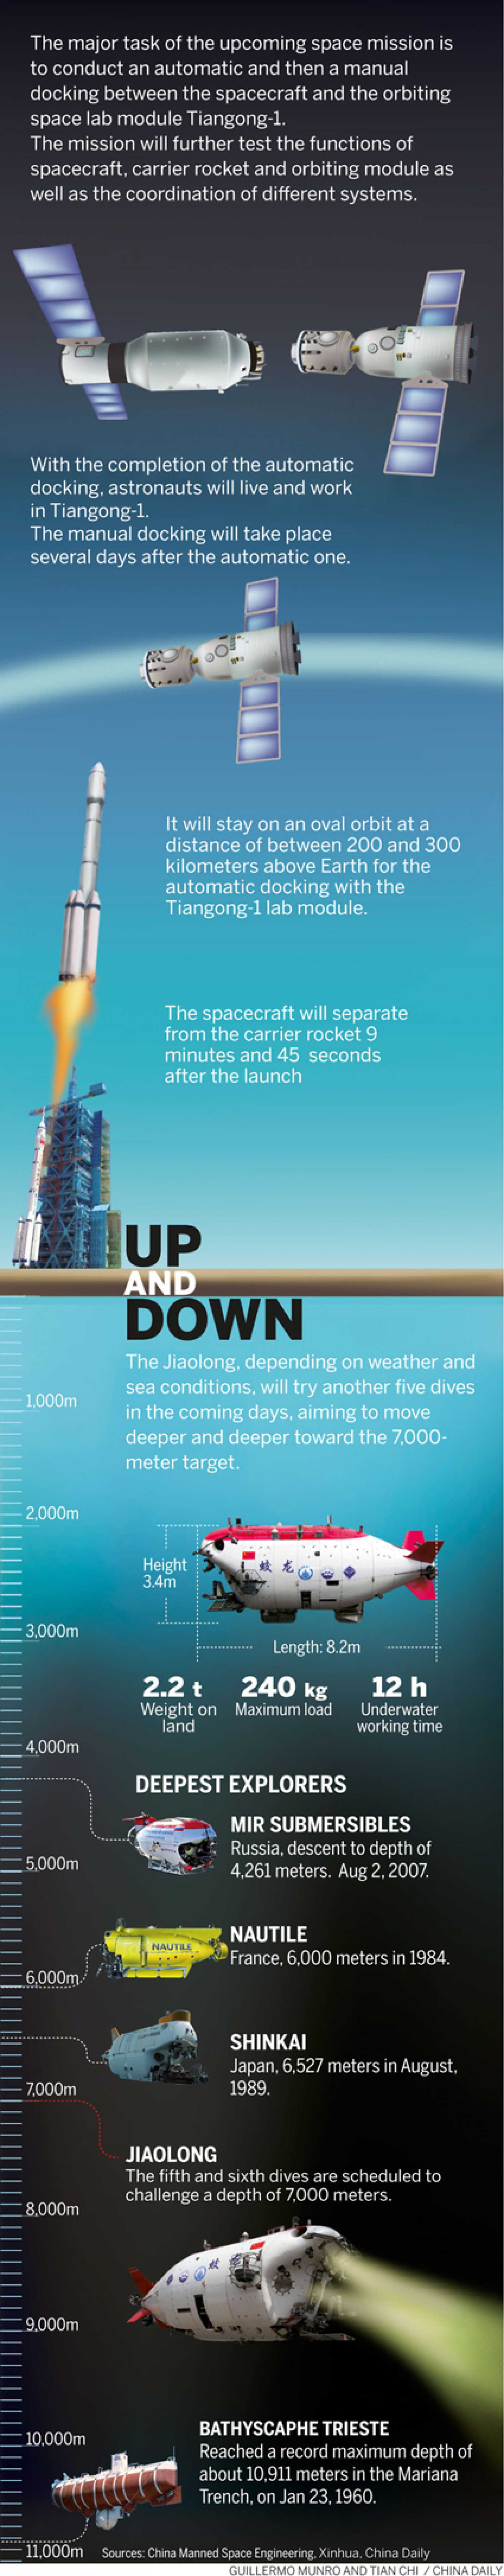 UP AND DOWN Infographic